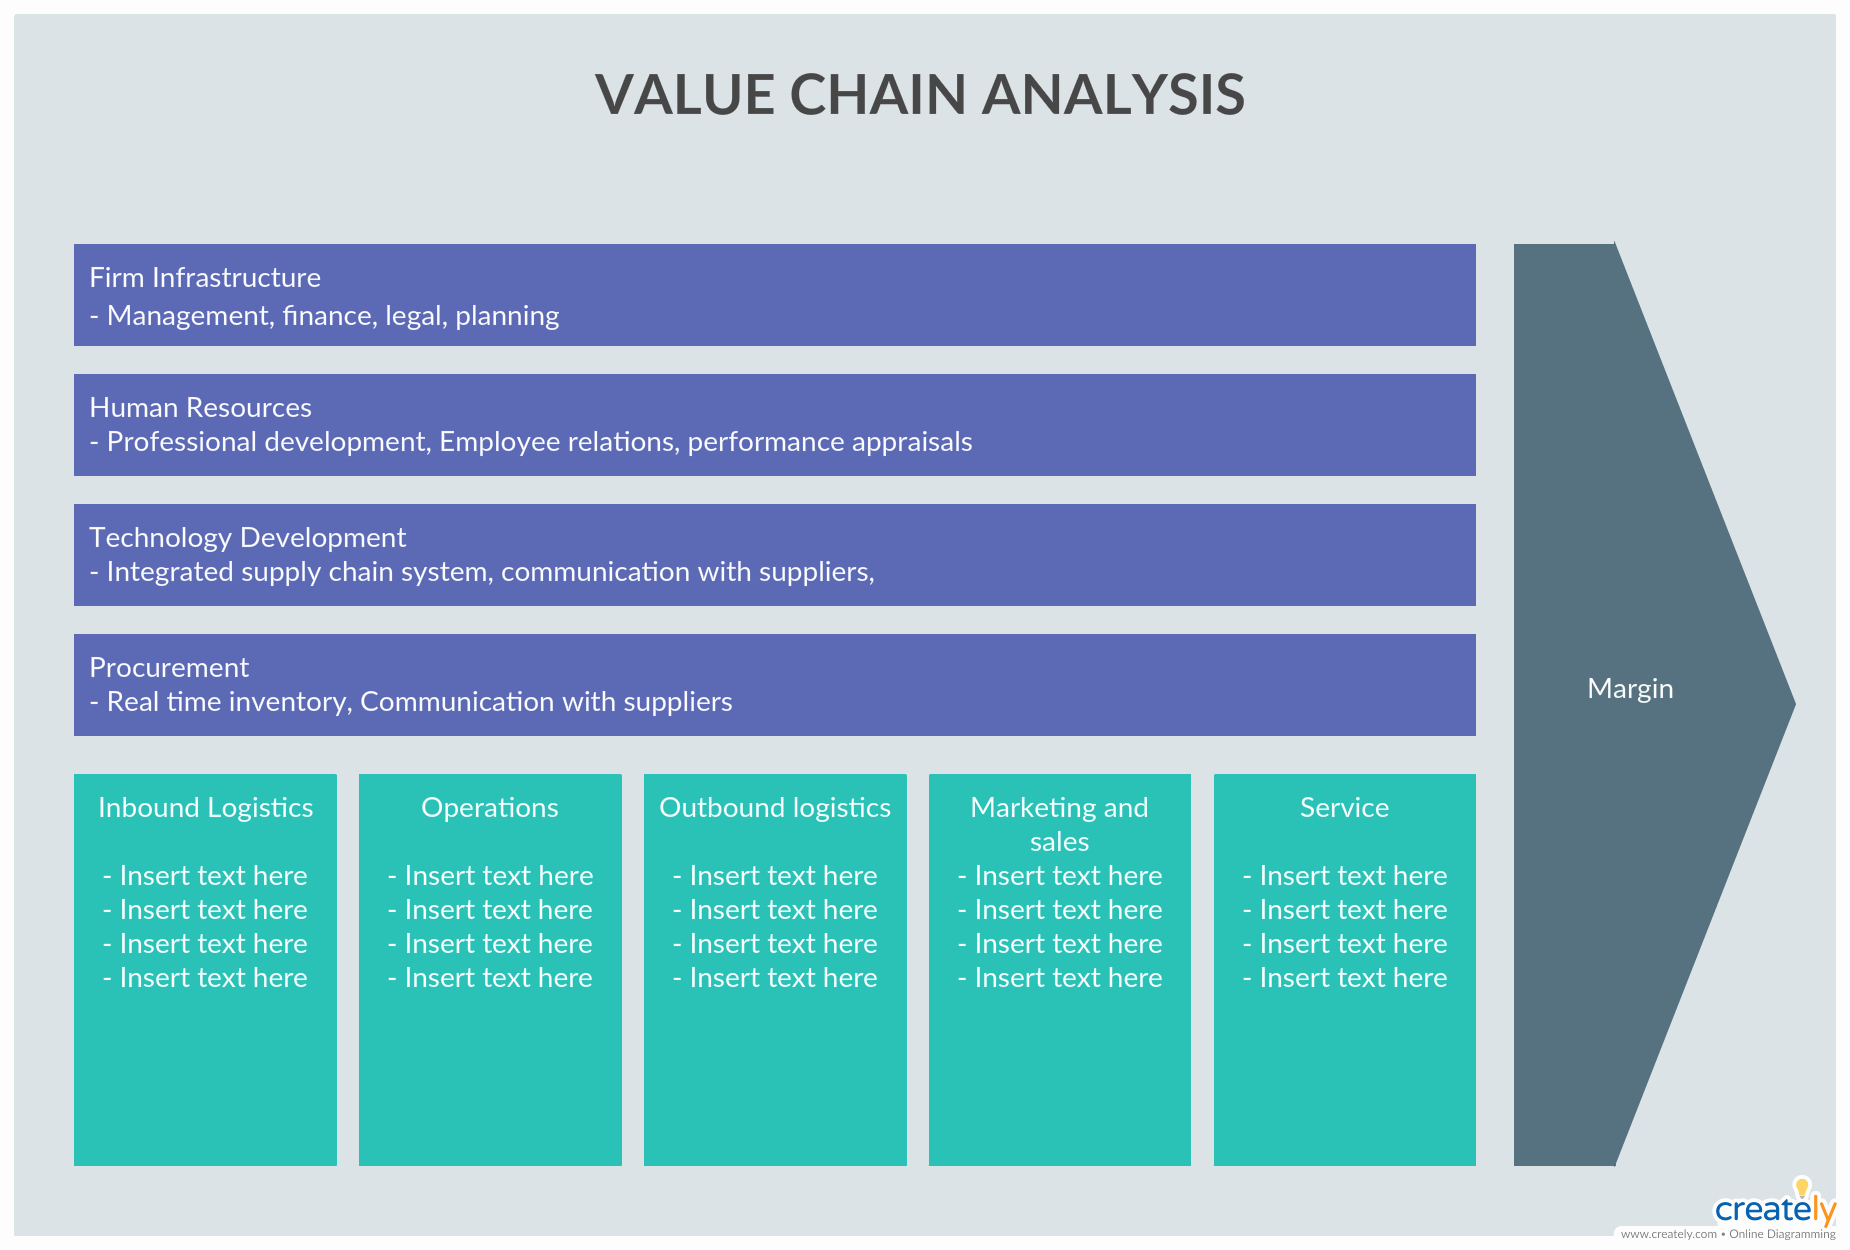 Value Chain Analysis Template Fresh Value Chain Analysis Example by Managing the Initial